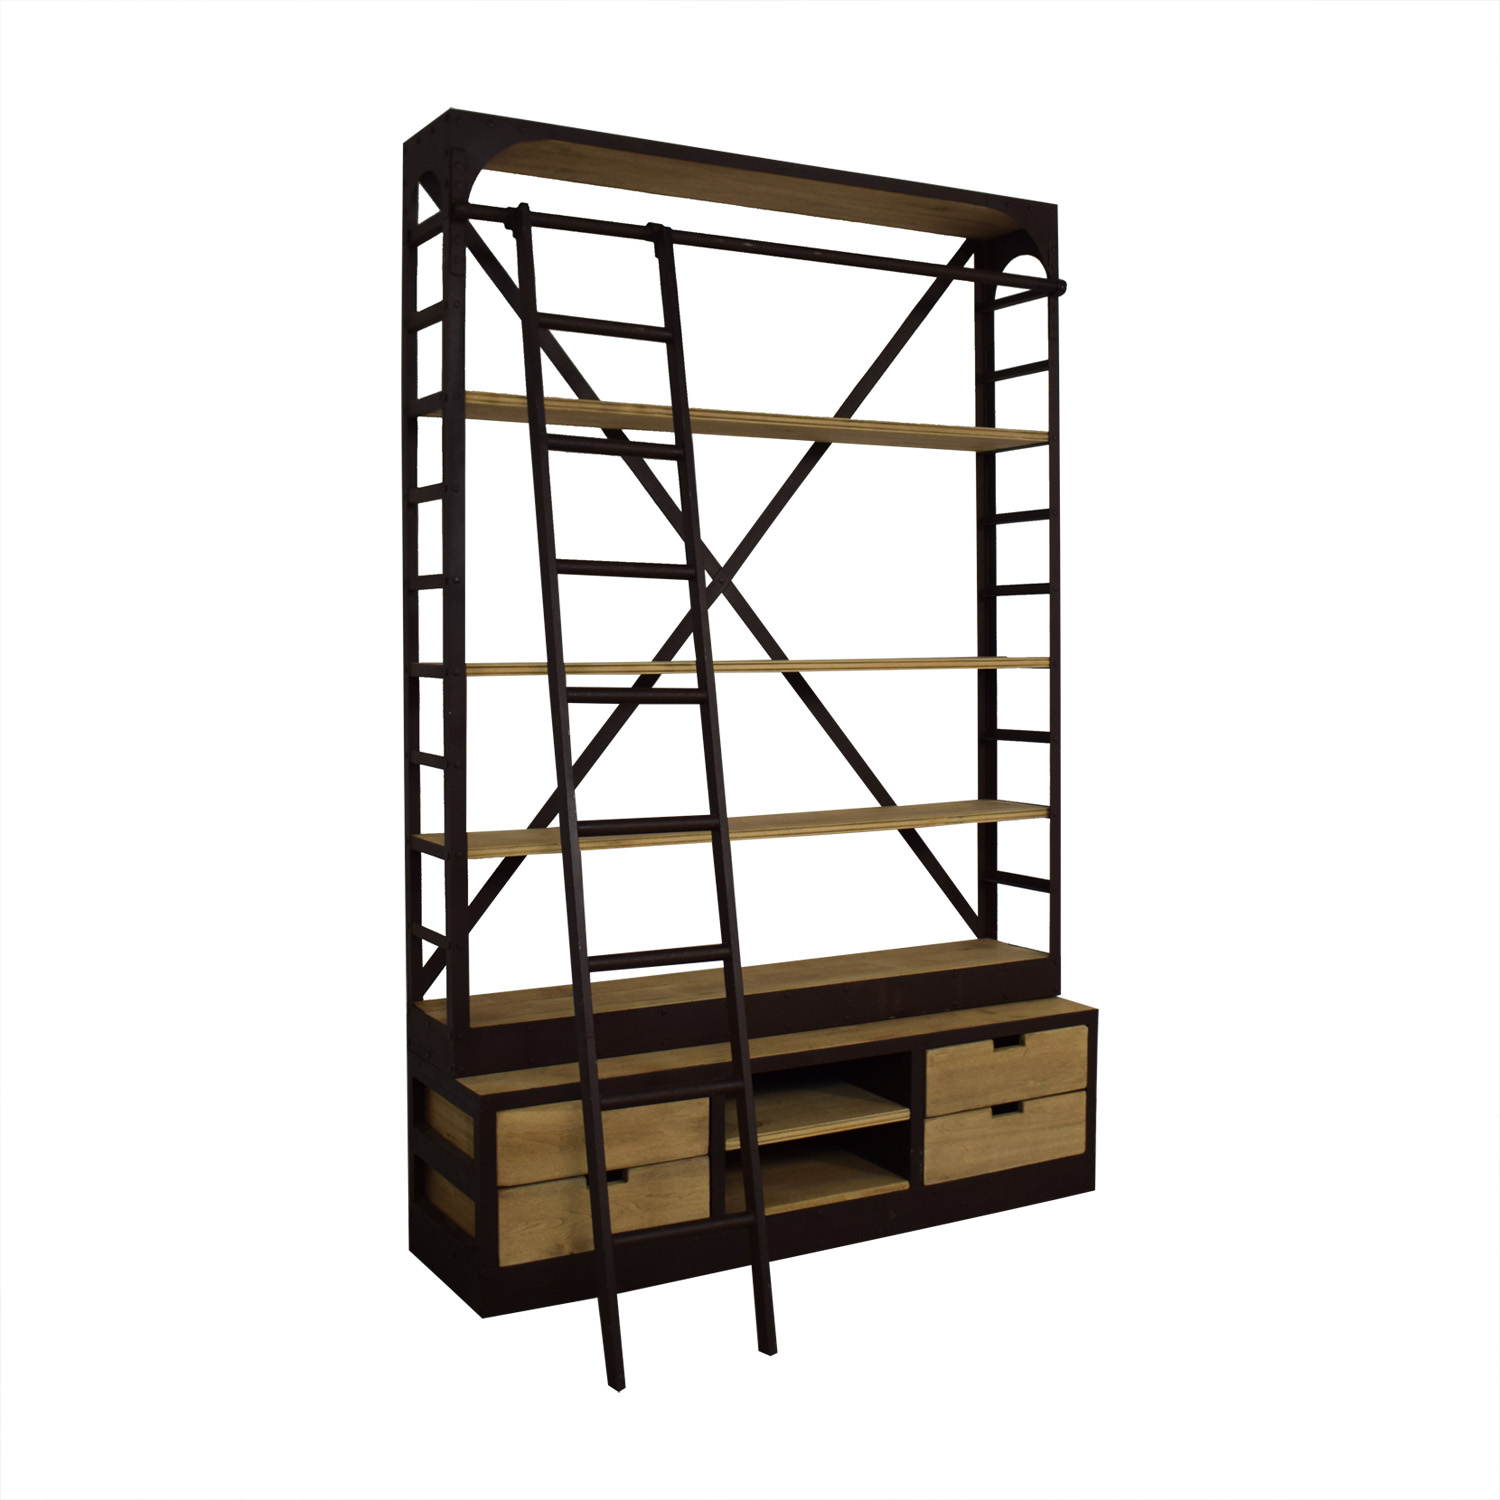 Restoration Hardware Restoration Hardware 1950s Dutch Shipyard Triple Shelving with Ladder used